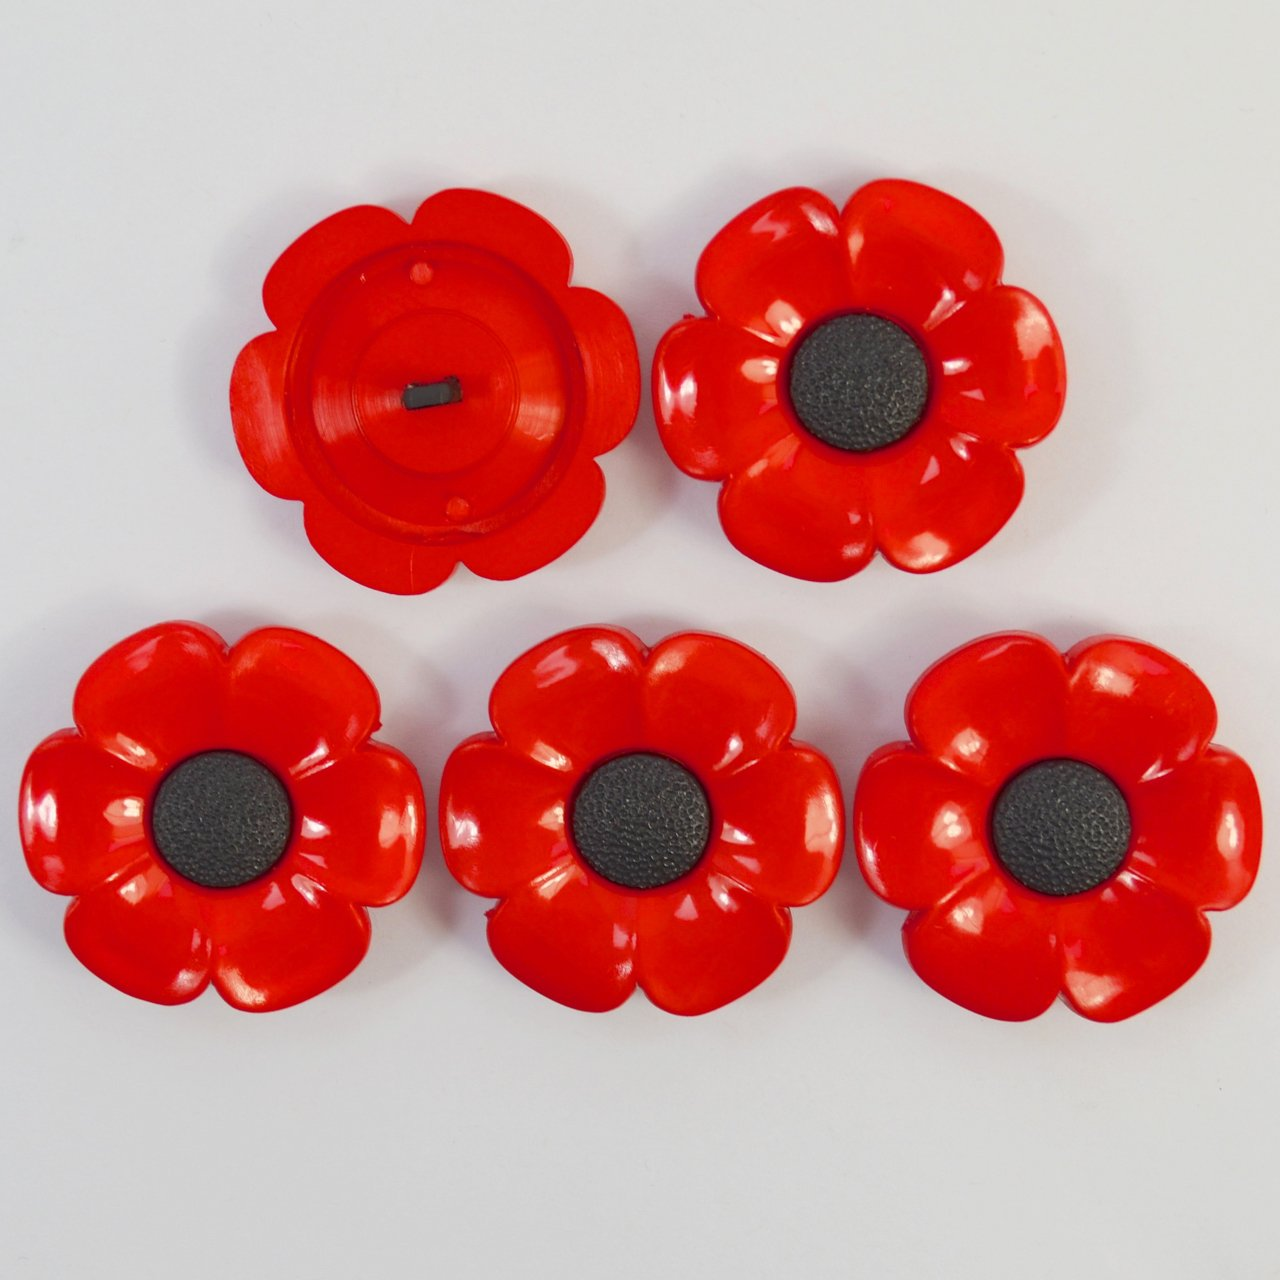 38mm Diameter Shank Back Red Flower Craft 5 X Large Resin Poppy Buttons